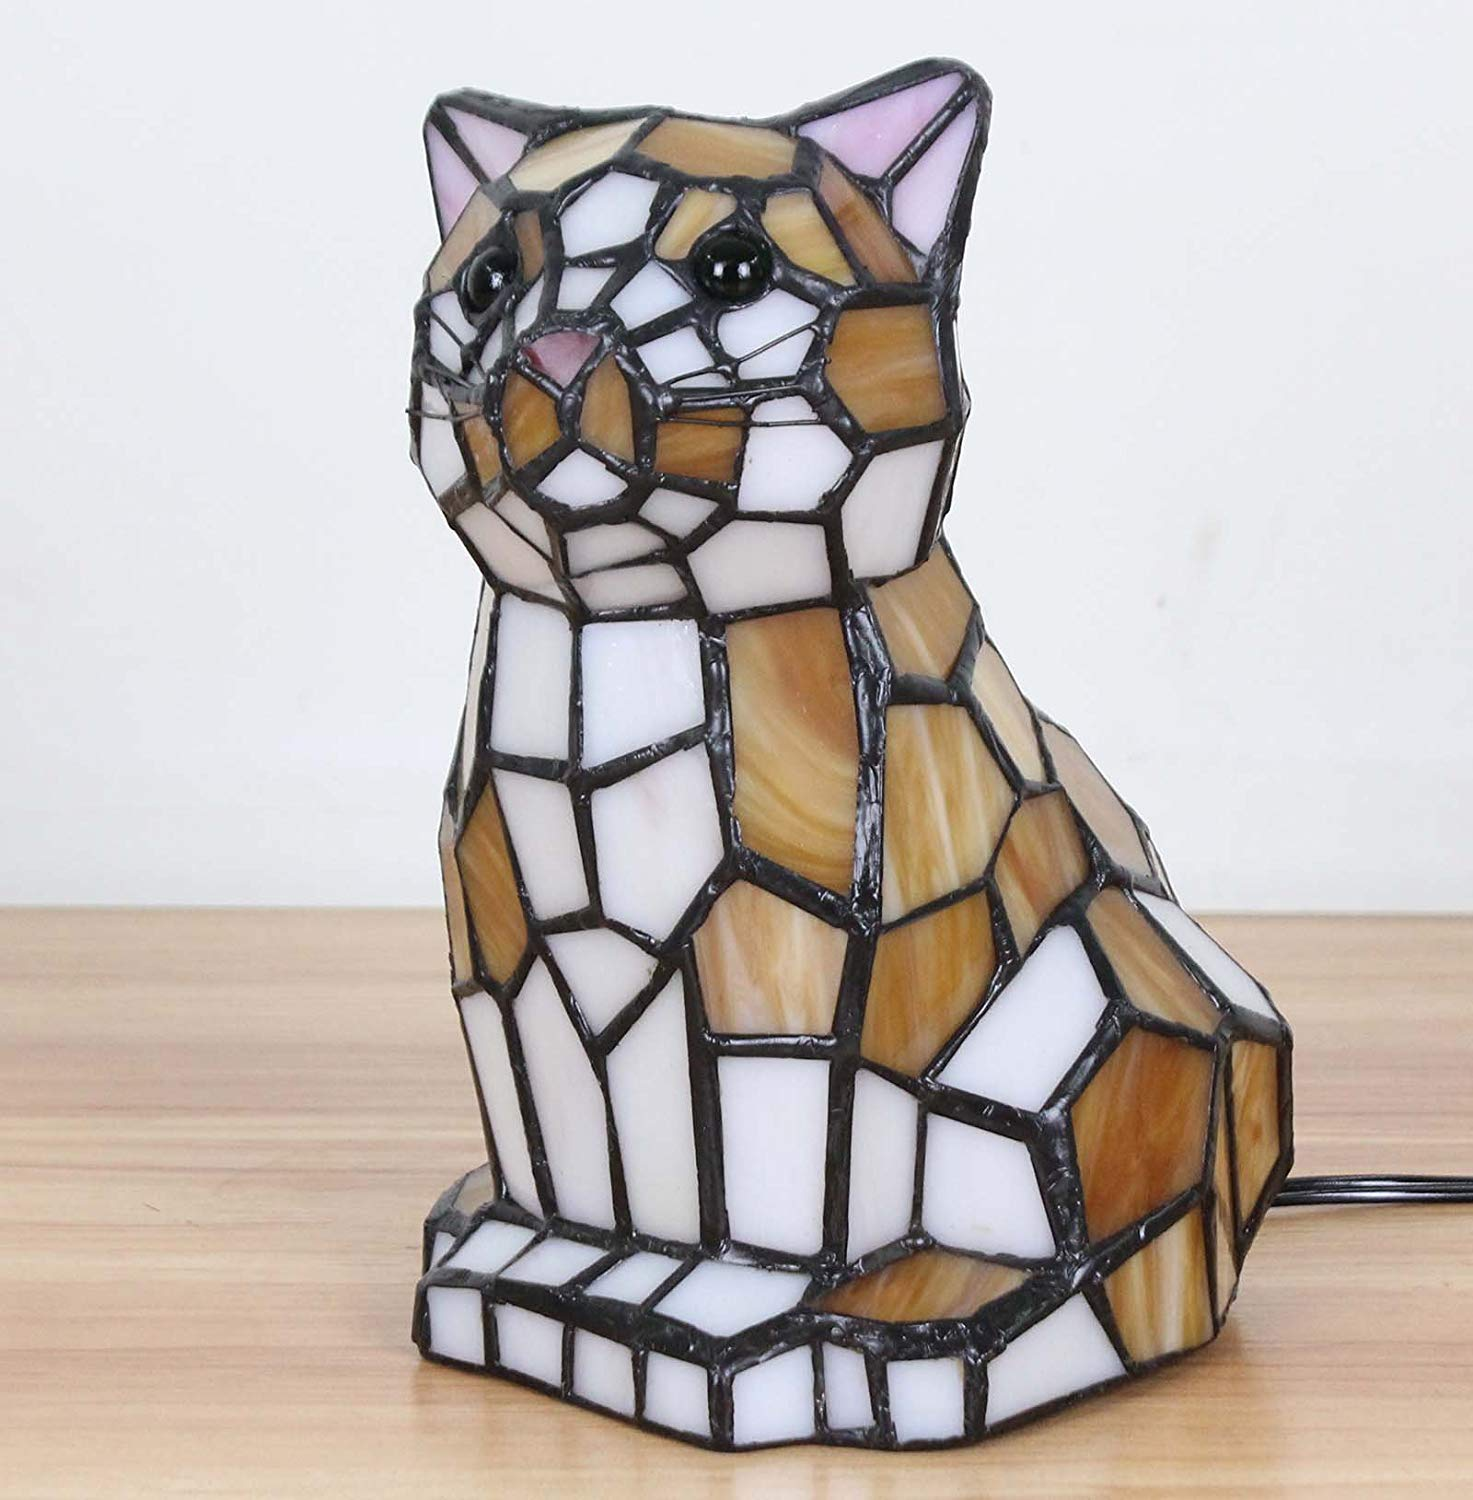 bieye inch lovely cat kitten tiffany style stained glass accent table lamp night light wood end with top oval garden furniture covers tall side drawers tory burch pearl necklace